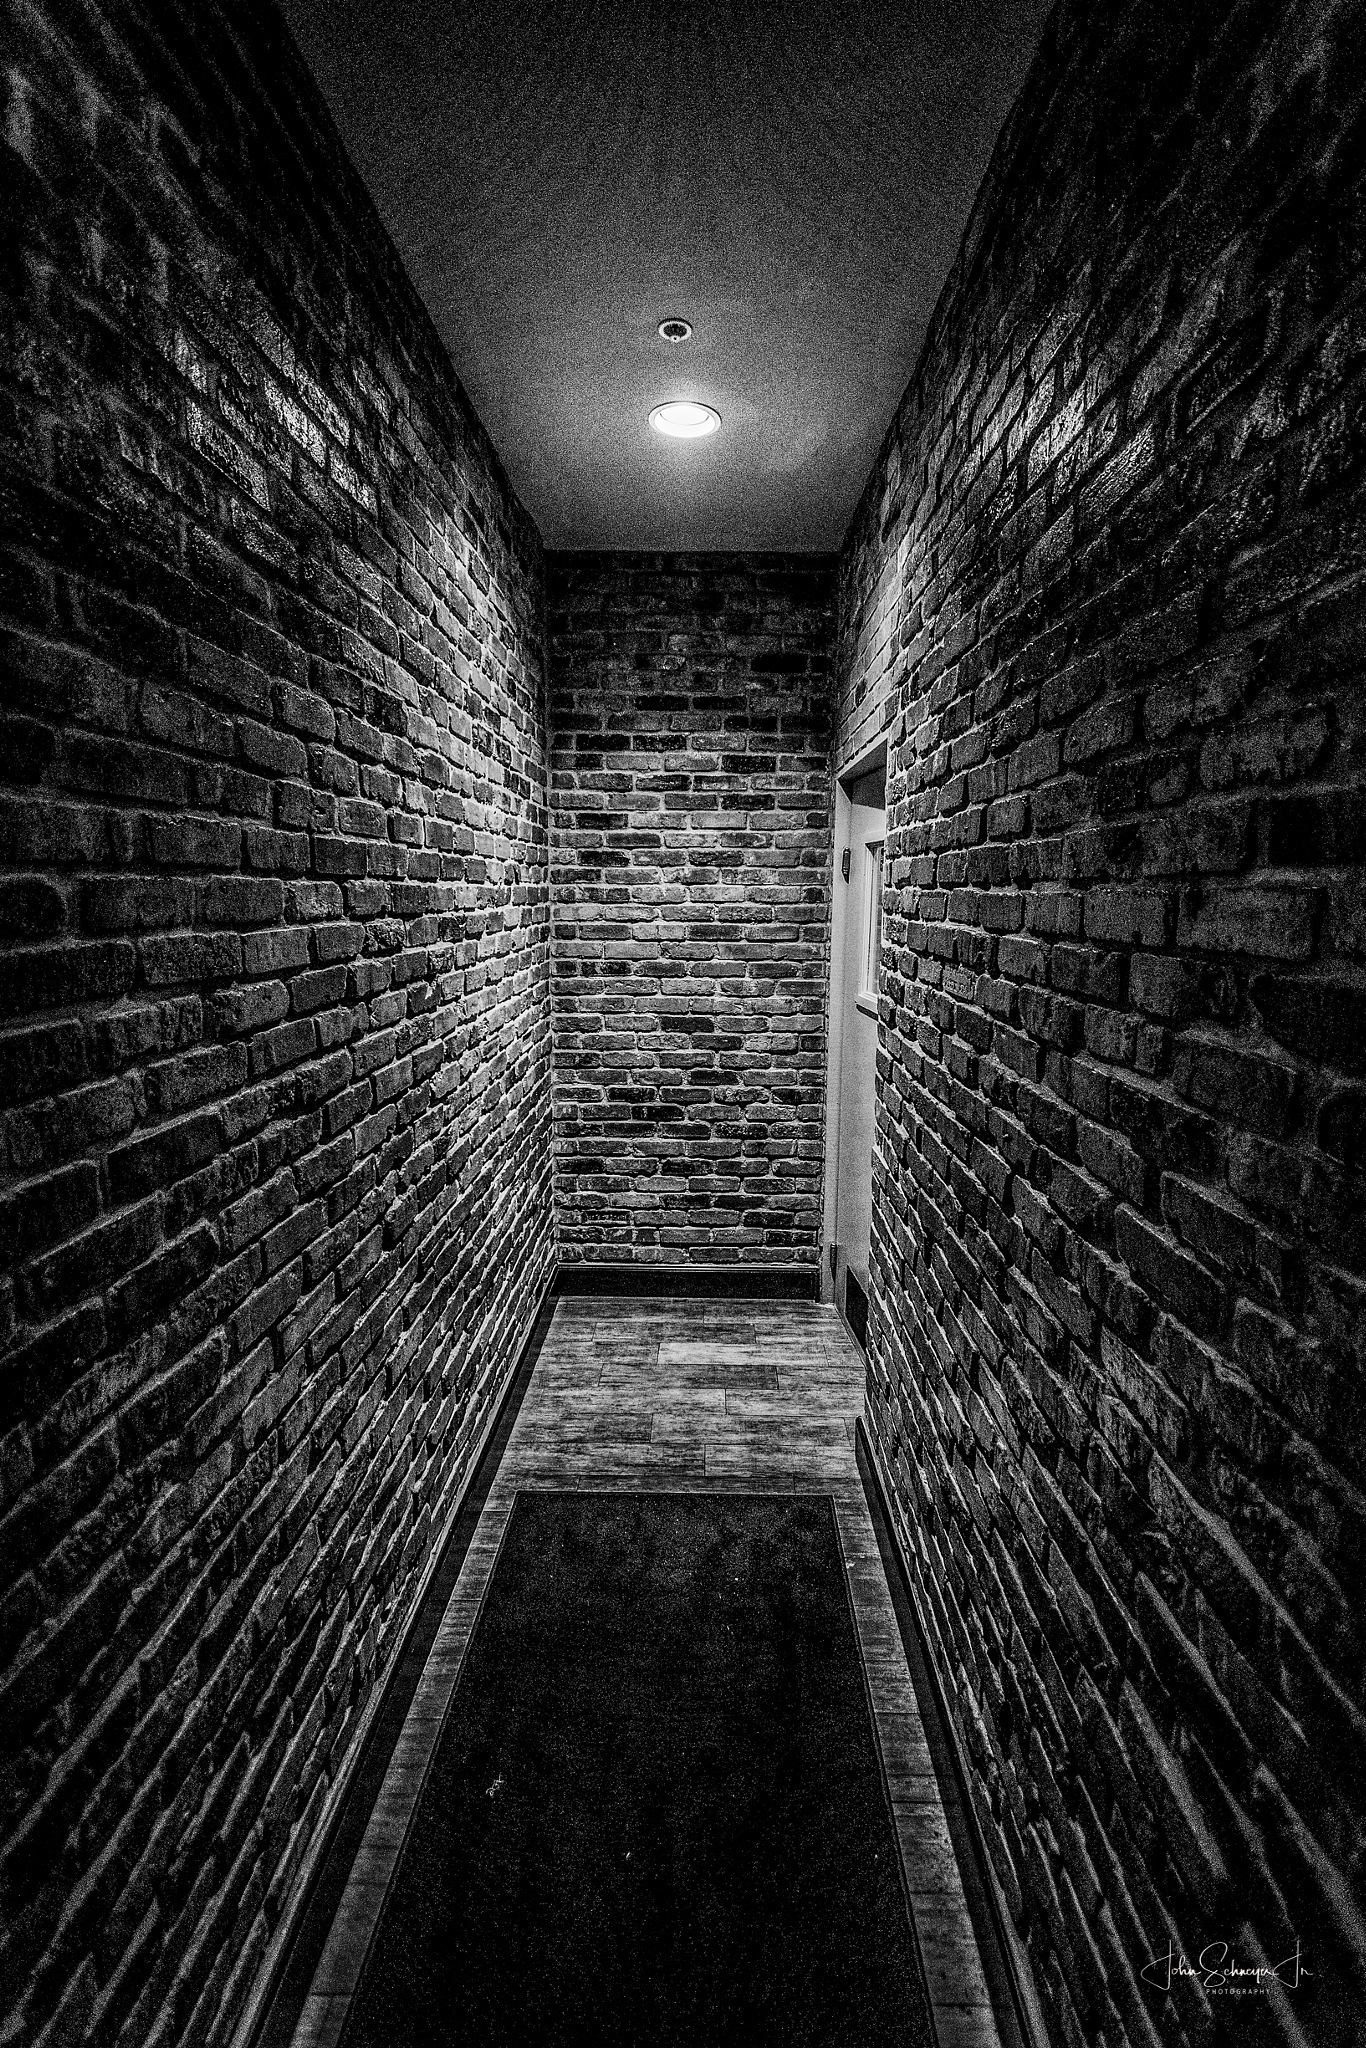 What's at the end of the Hall? by John Schneyer